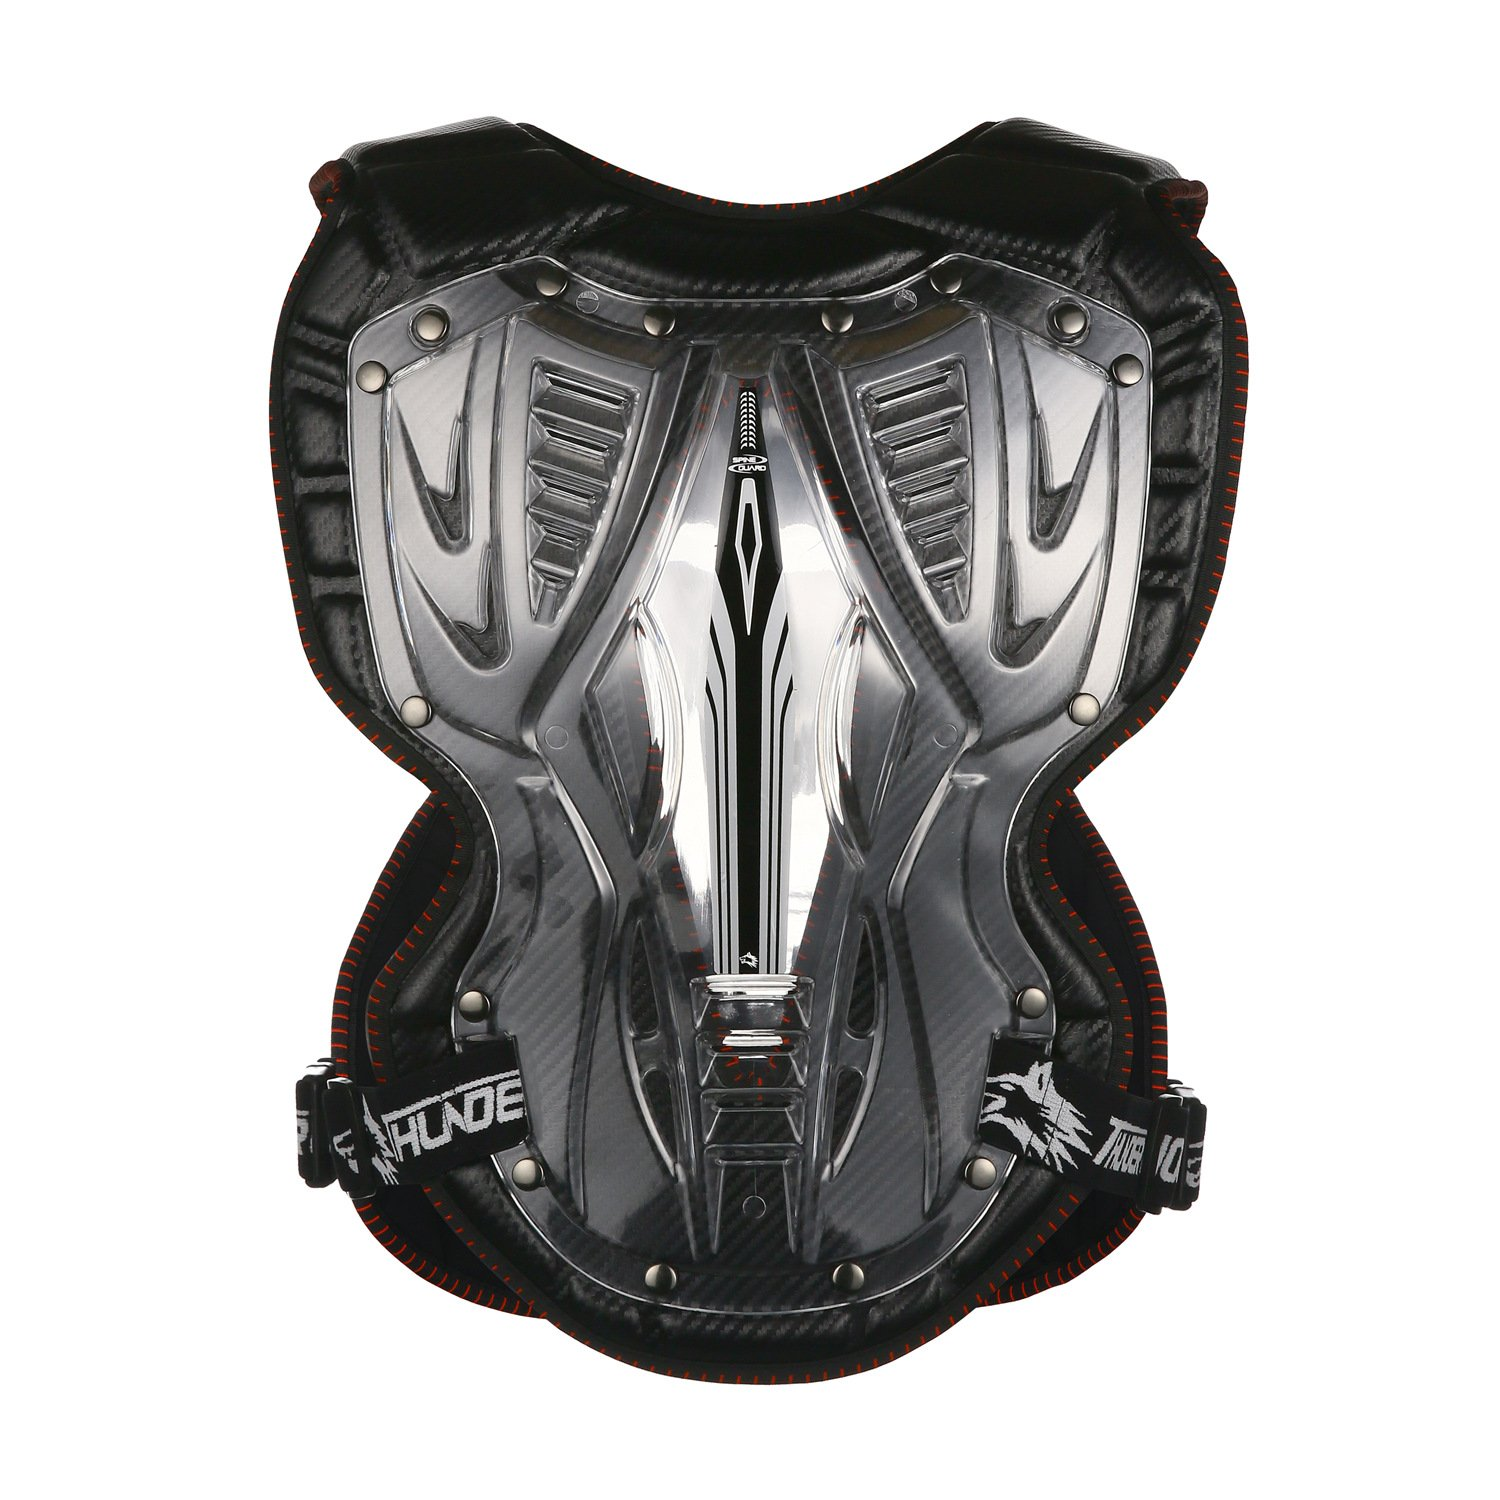 Huntingwolf Racing Body Armor Motorcycle Motocross Combination Chest & Back Protectors (L/XL)